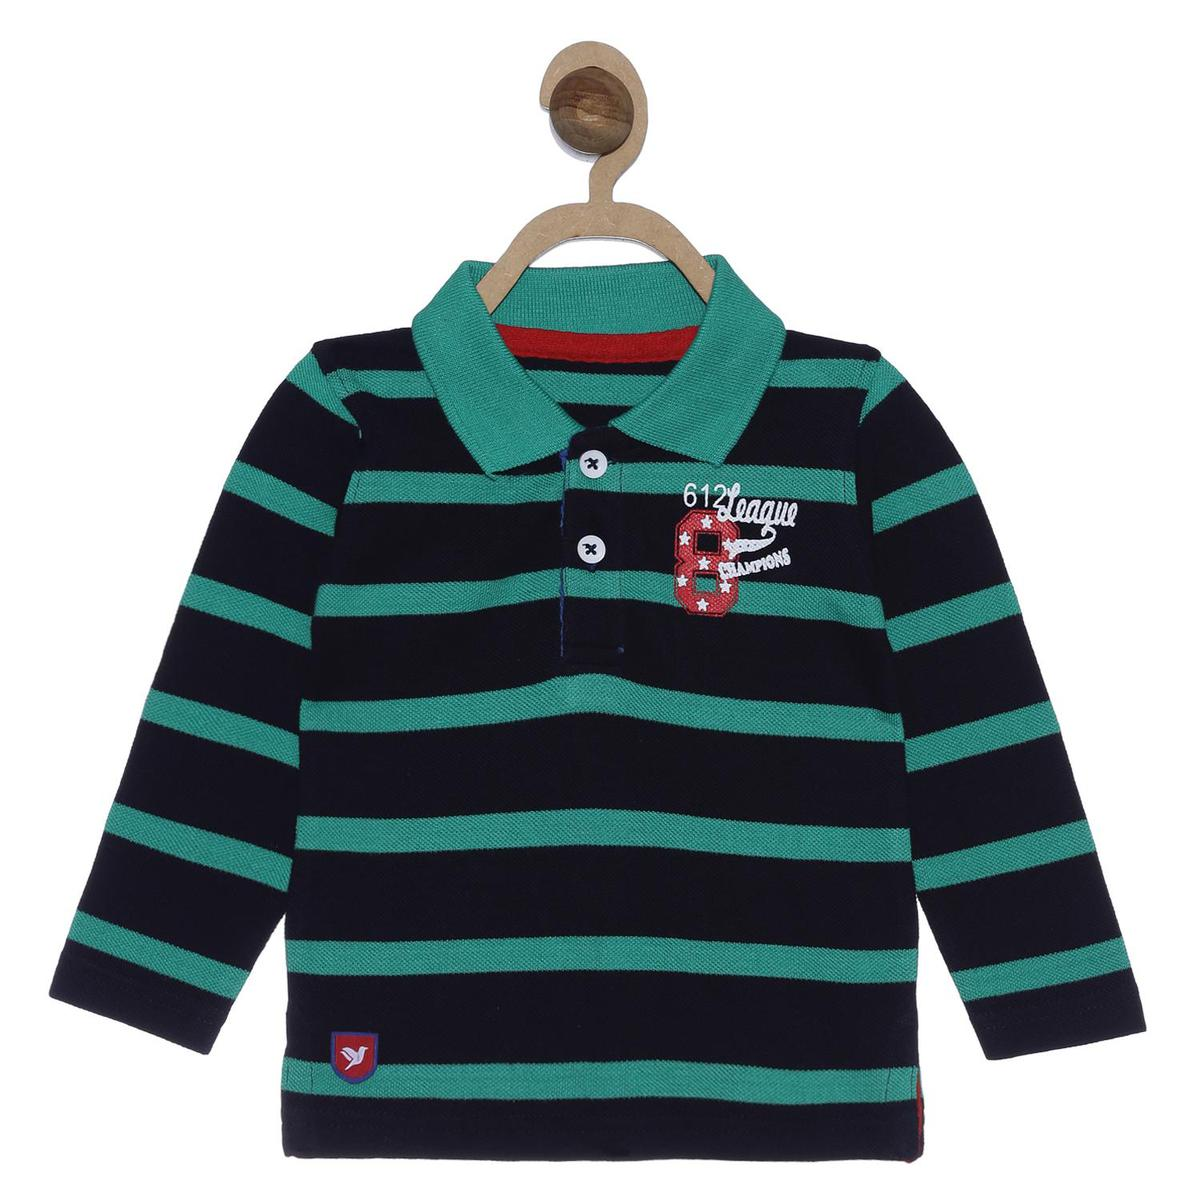 612 League - Boy's Green Colored Knit Printed Polo T-shirt